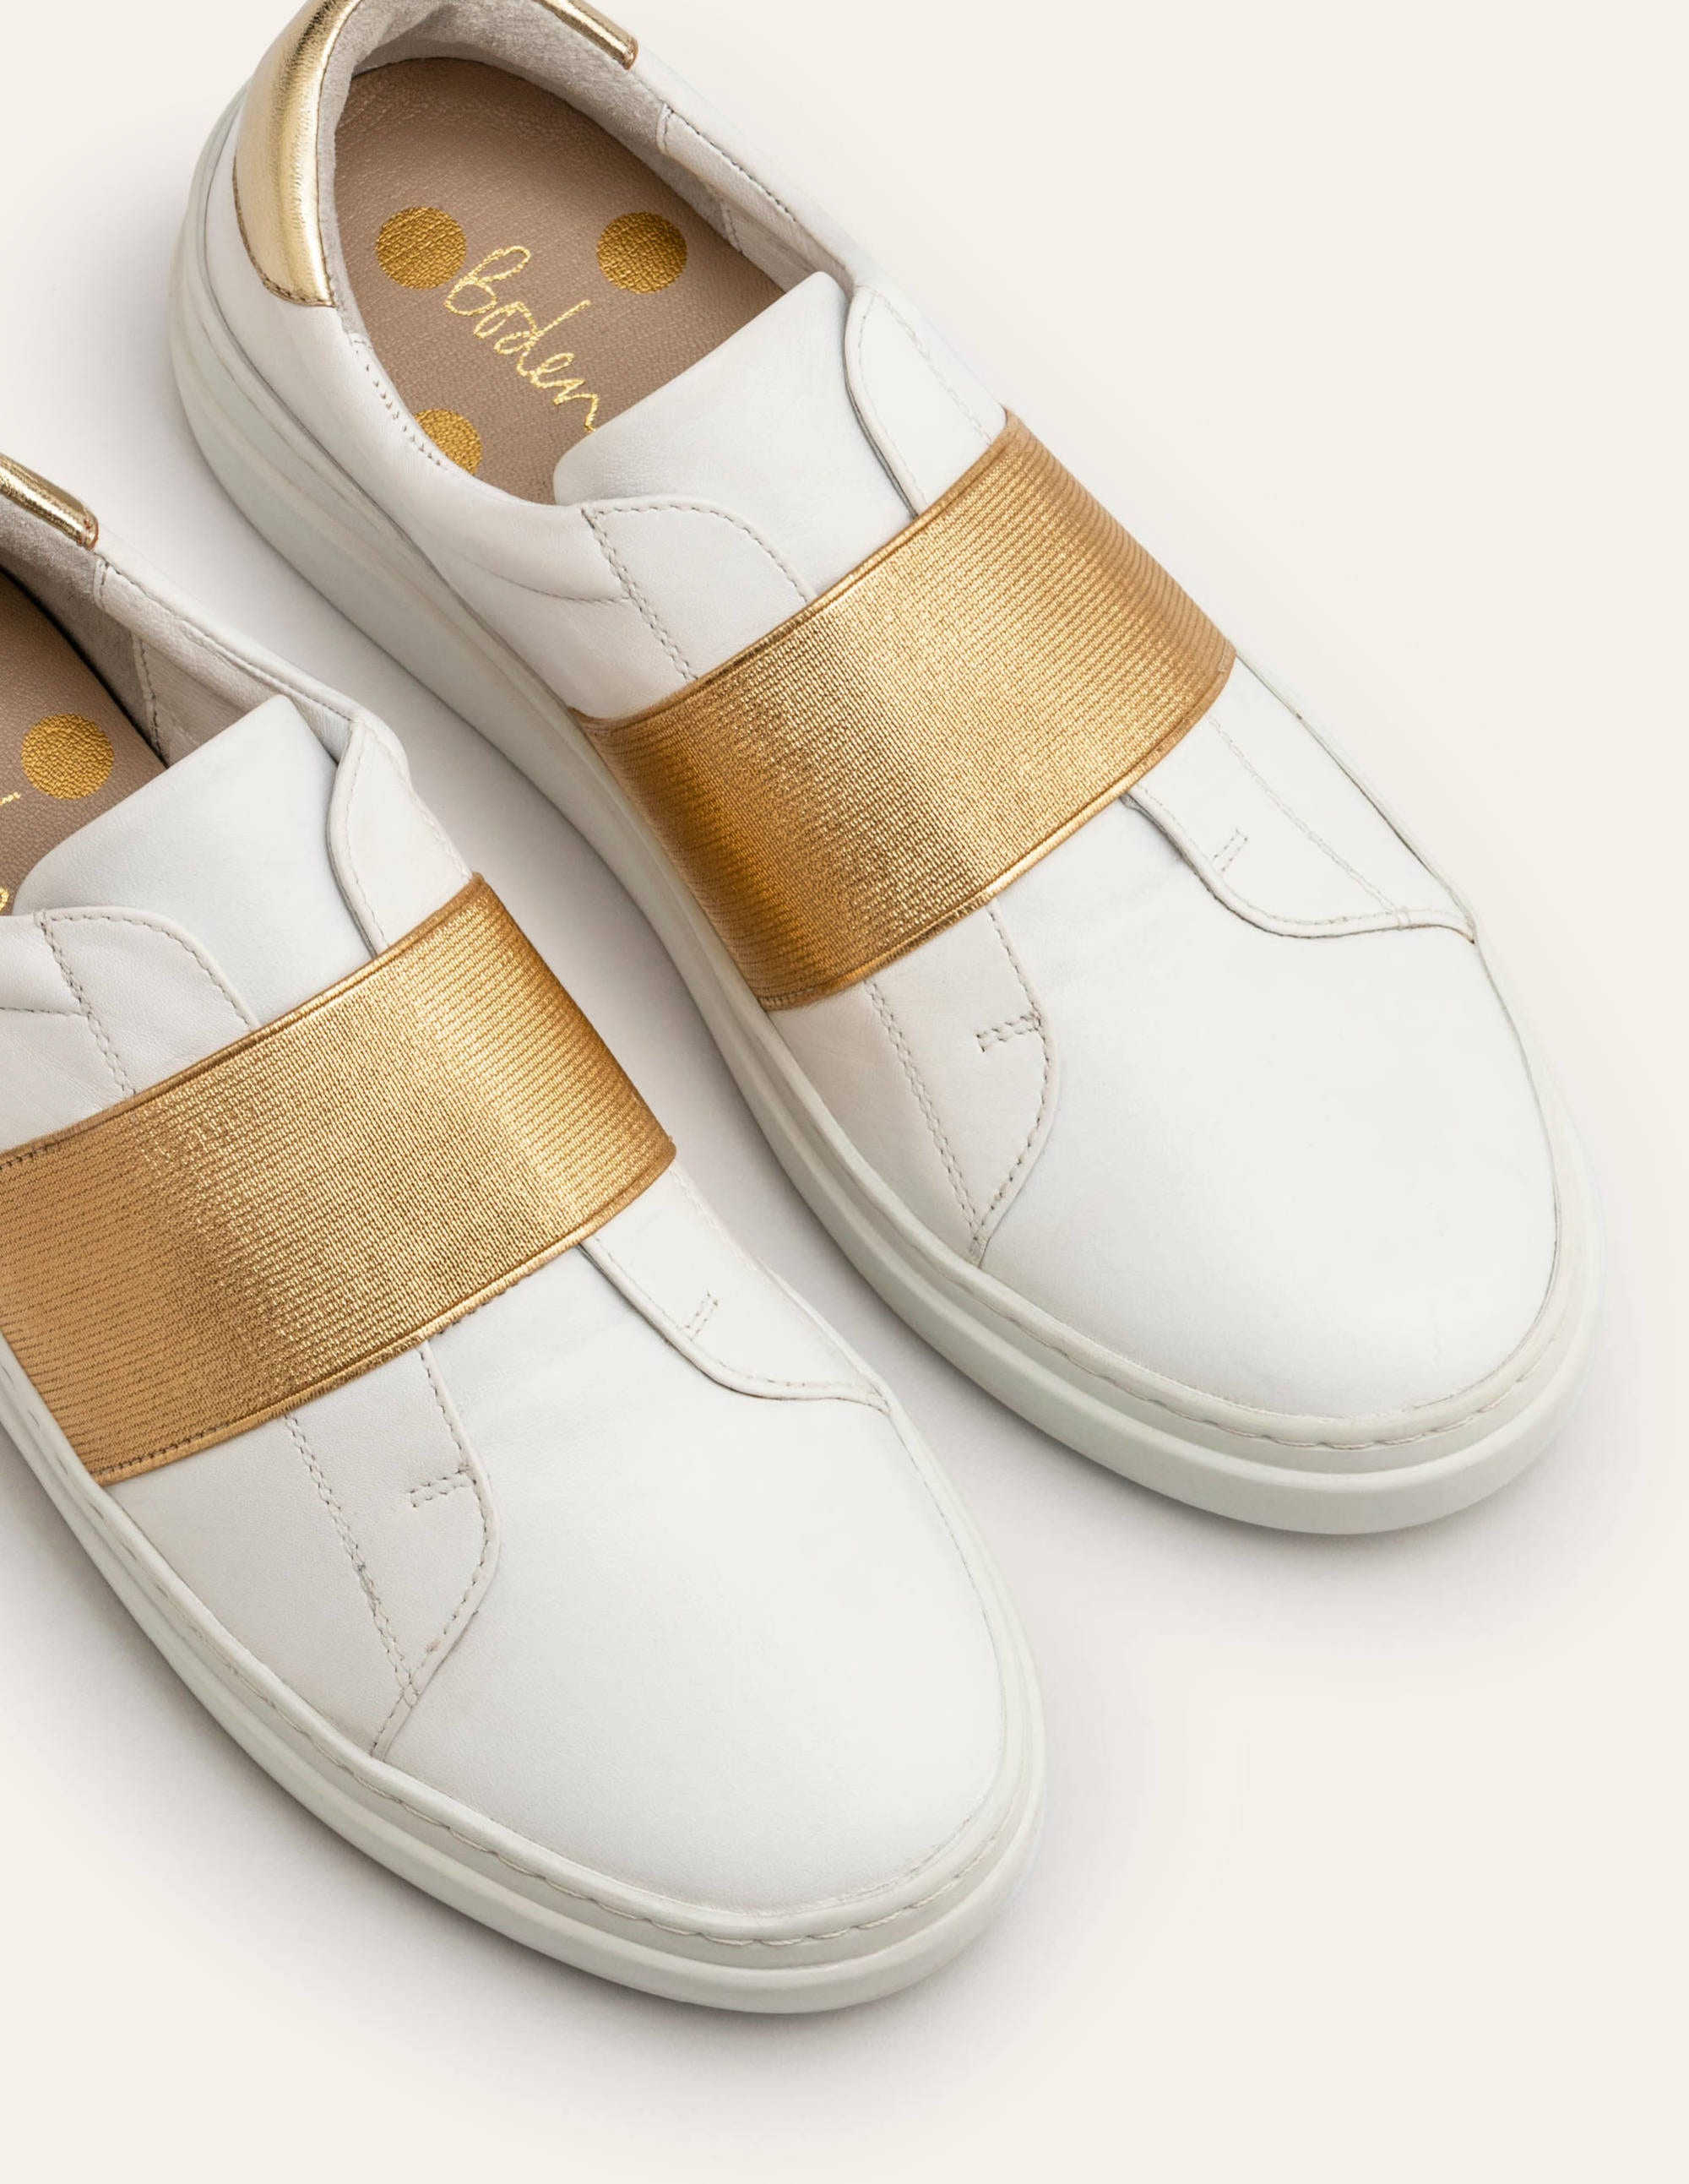 Isabel Trainers - White/Gold Metallic